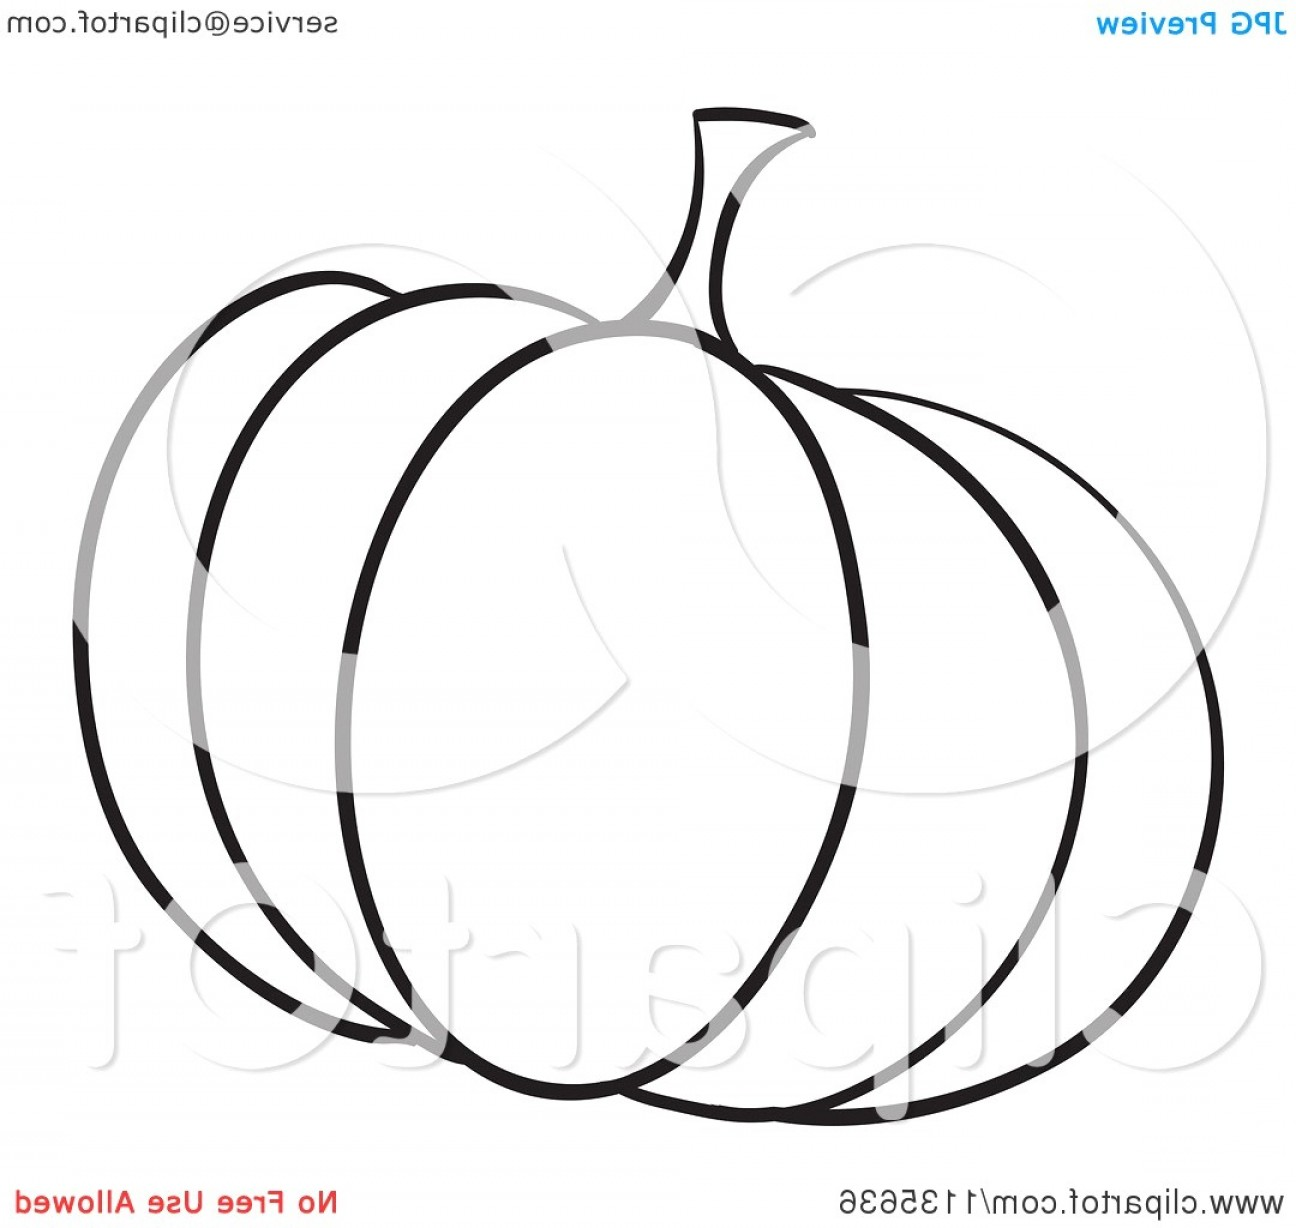 Pumpkin Outline Vector Art: Pumpkin Outline Clipart Black And White Cartoon Of A Royalty Free Vector